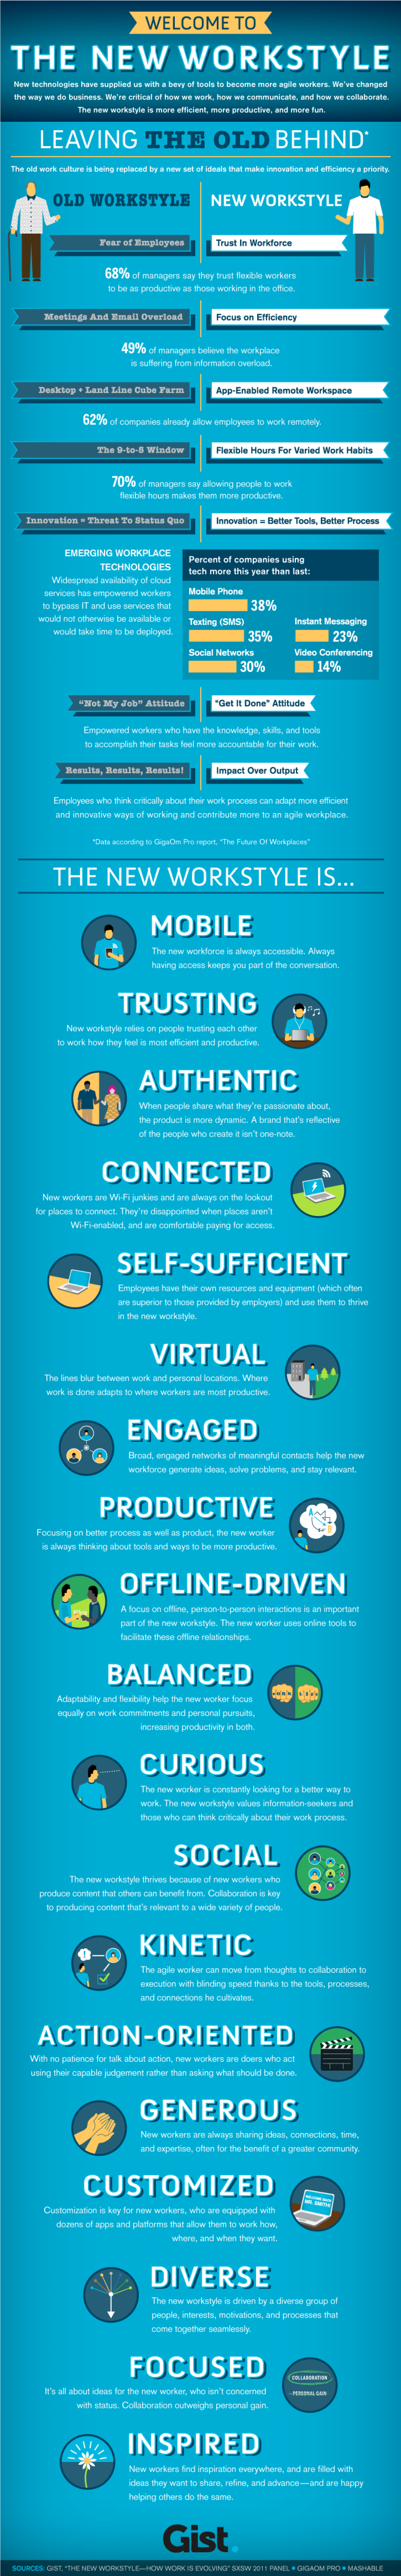 The New Workstyle Infographic